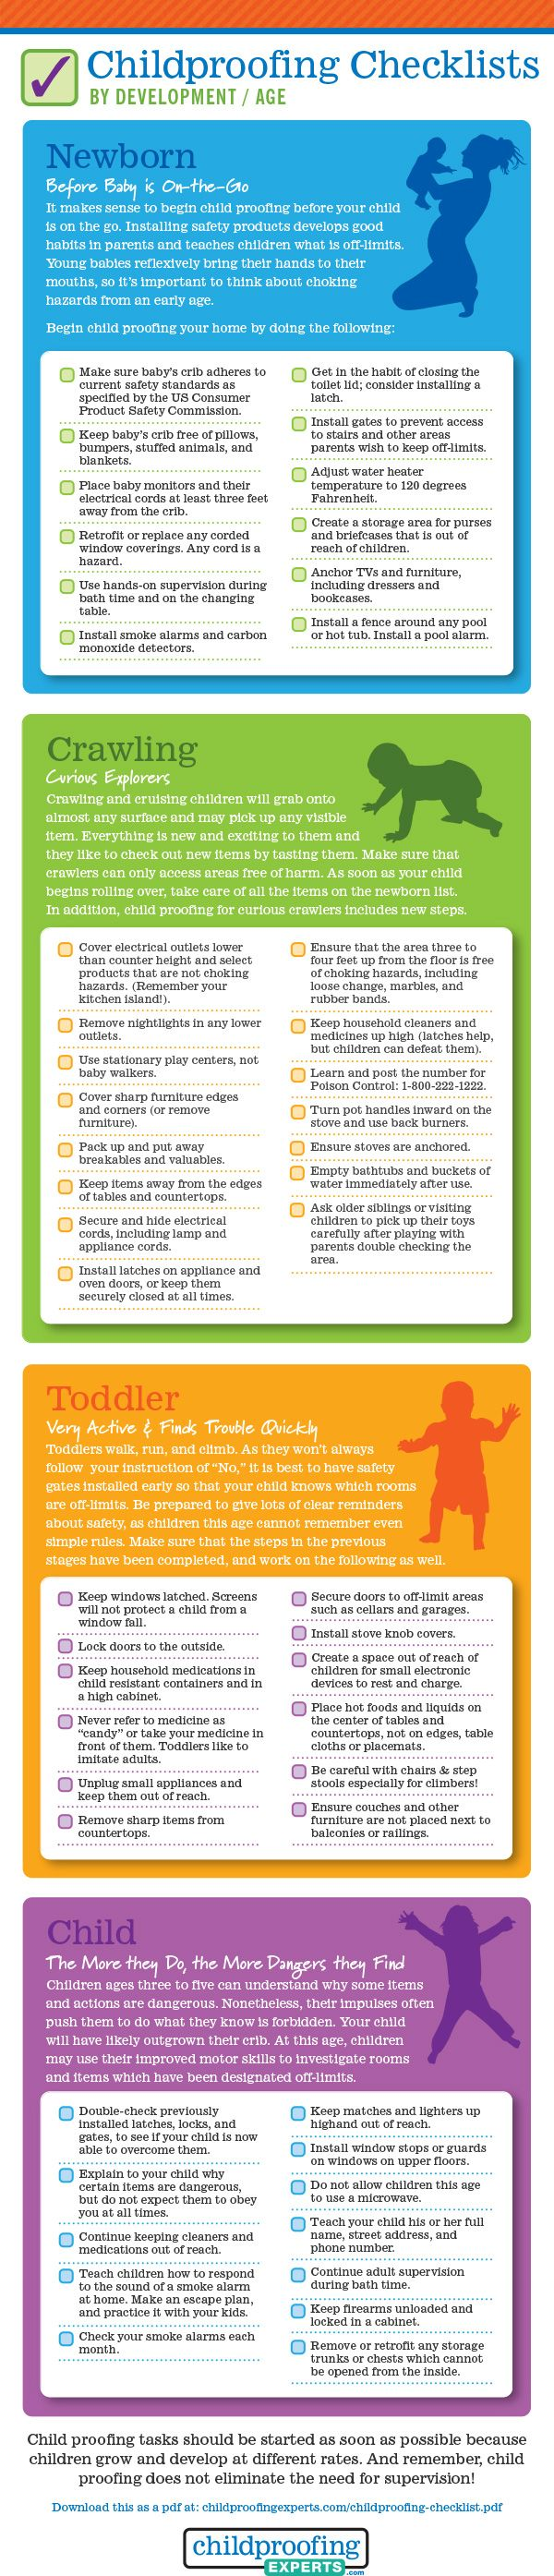 Childproofing Checklist by Age. Created for the International Association for Child Safety, IAFCS on childproofingexperts.com